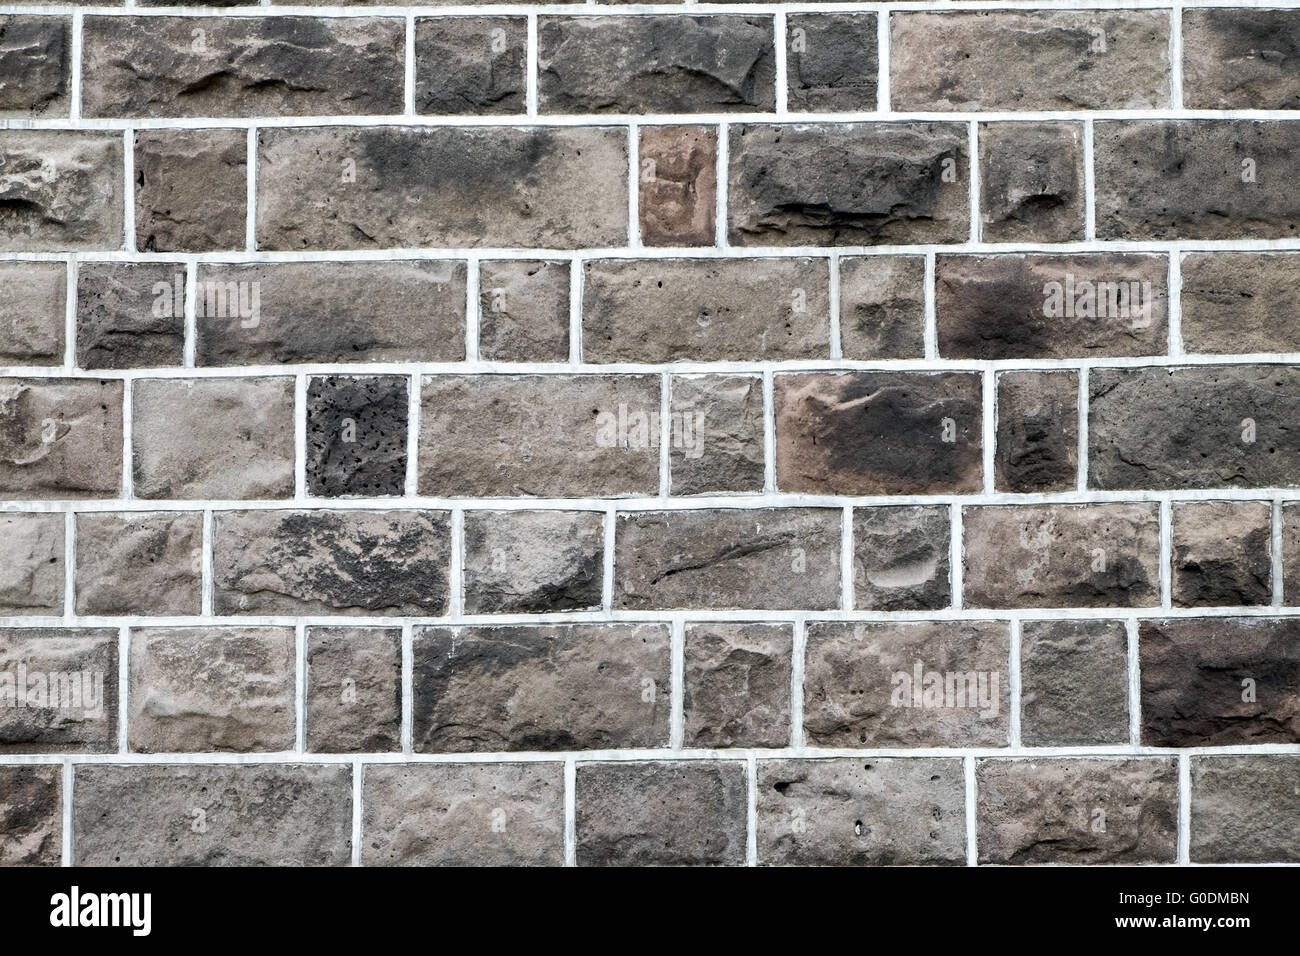 Background from an old brown stone wall - Stock Image